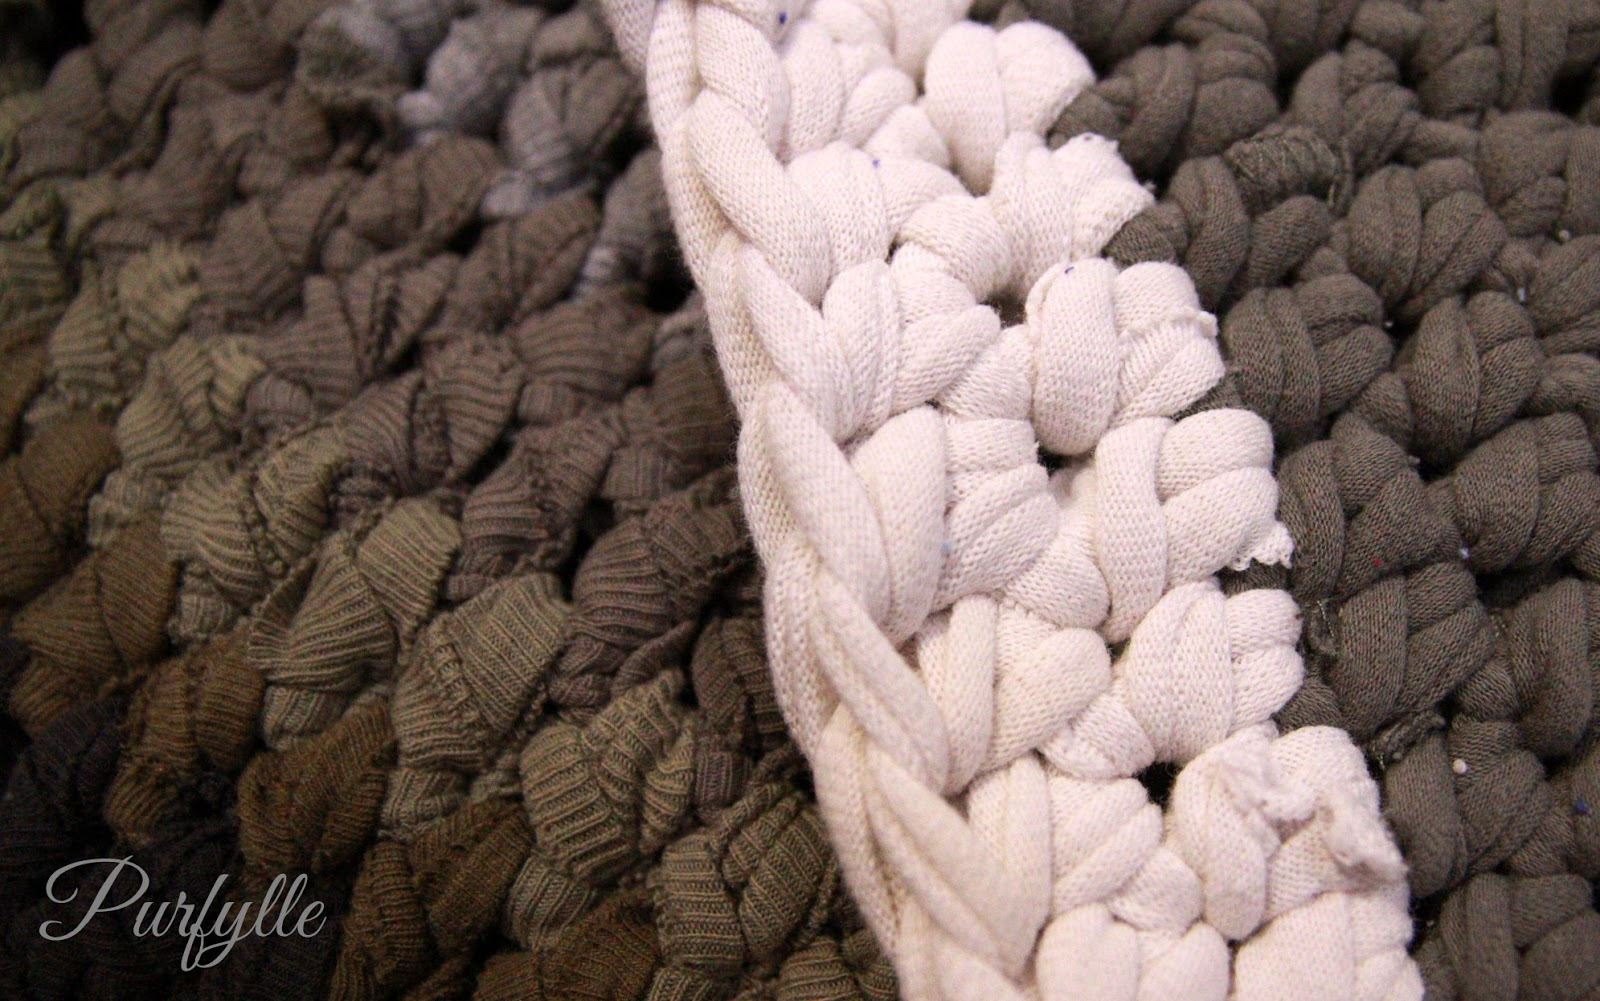 different textures from types of t-shirt yarn